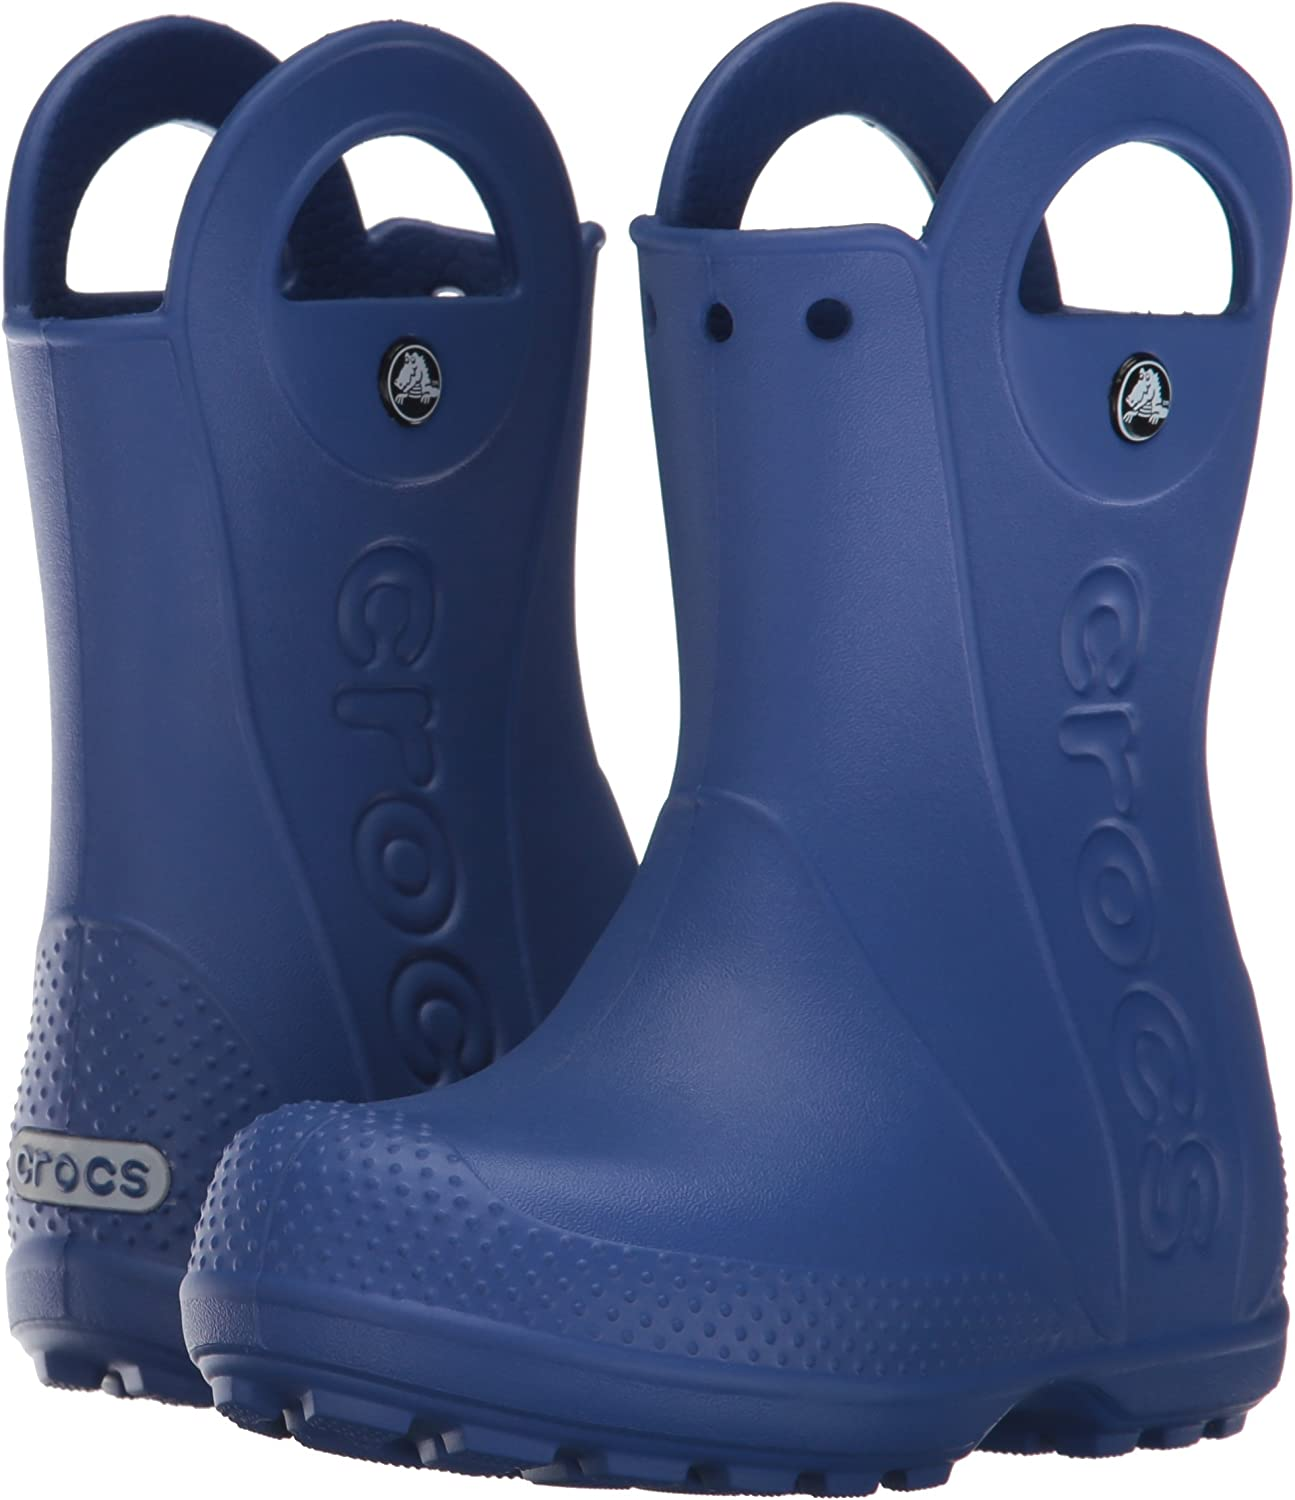 Crocs Kids Handle-it Rain Boot Shoe